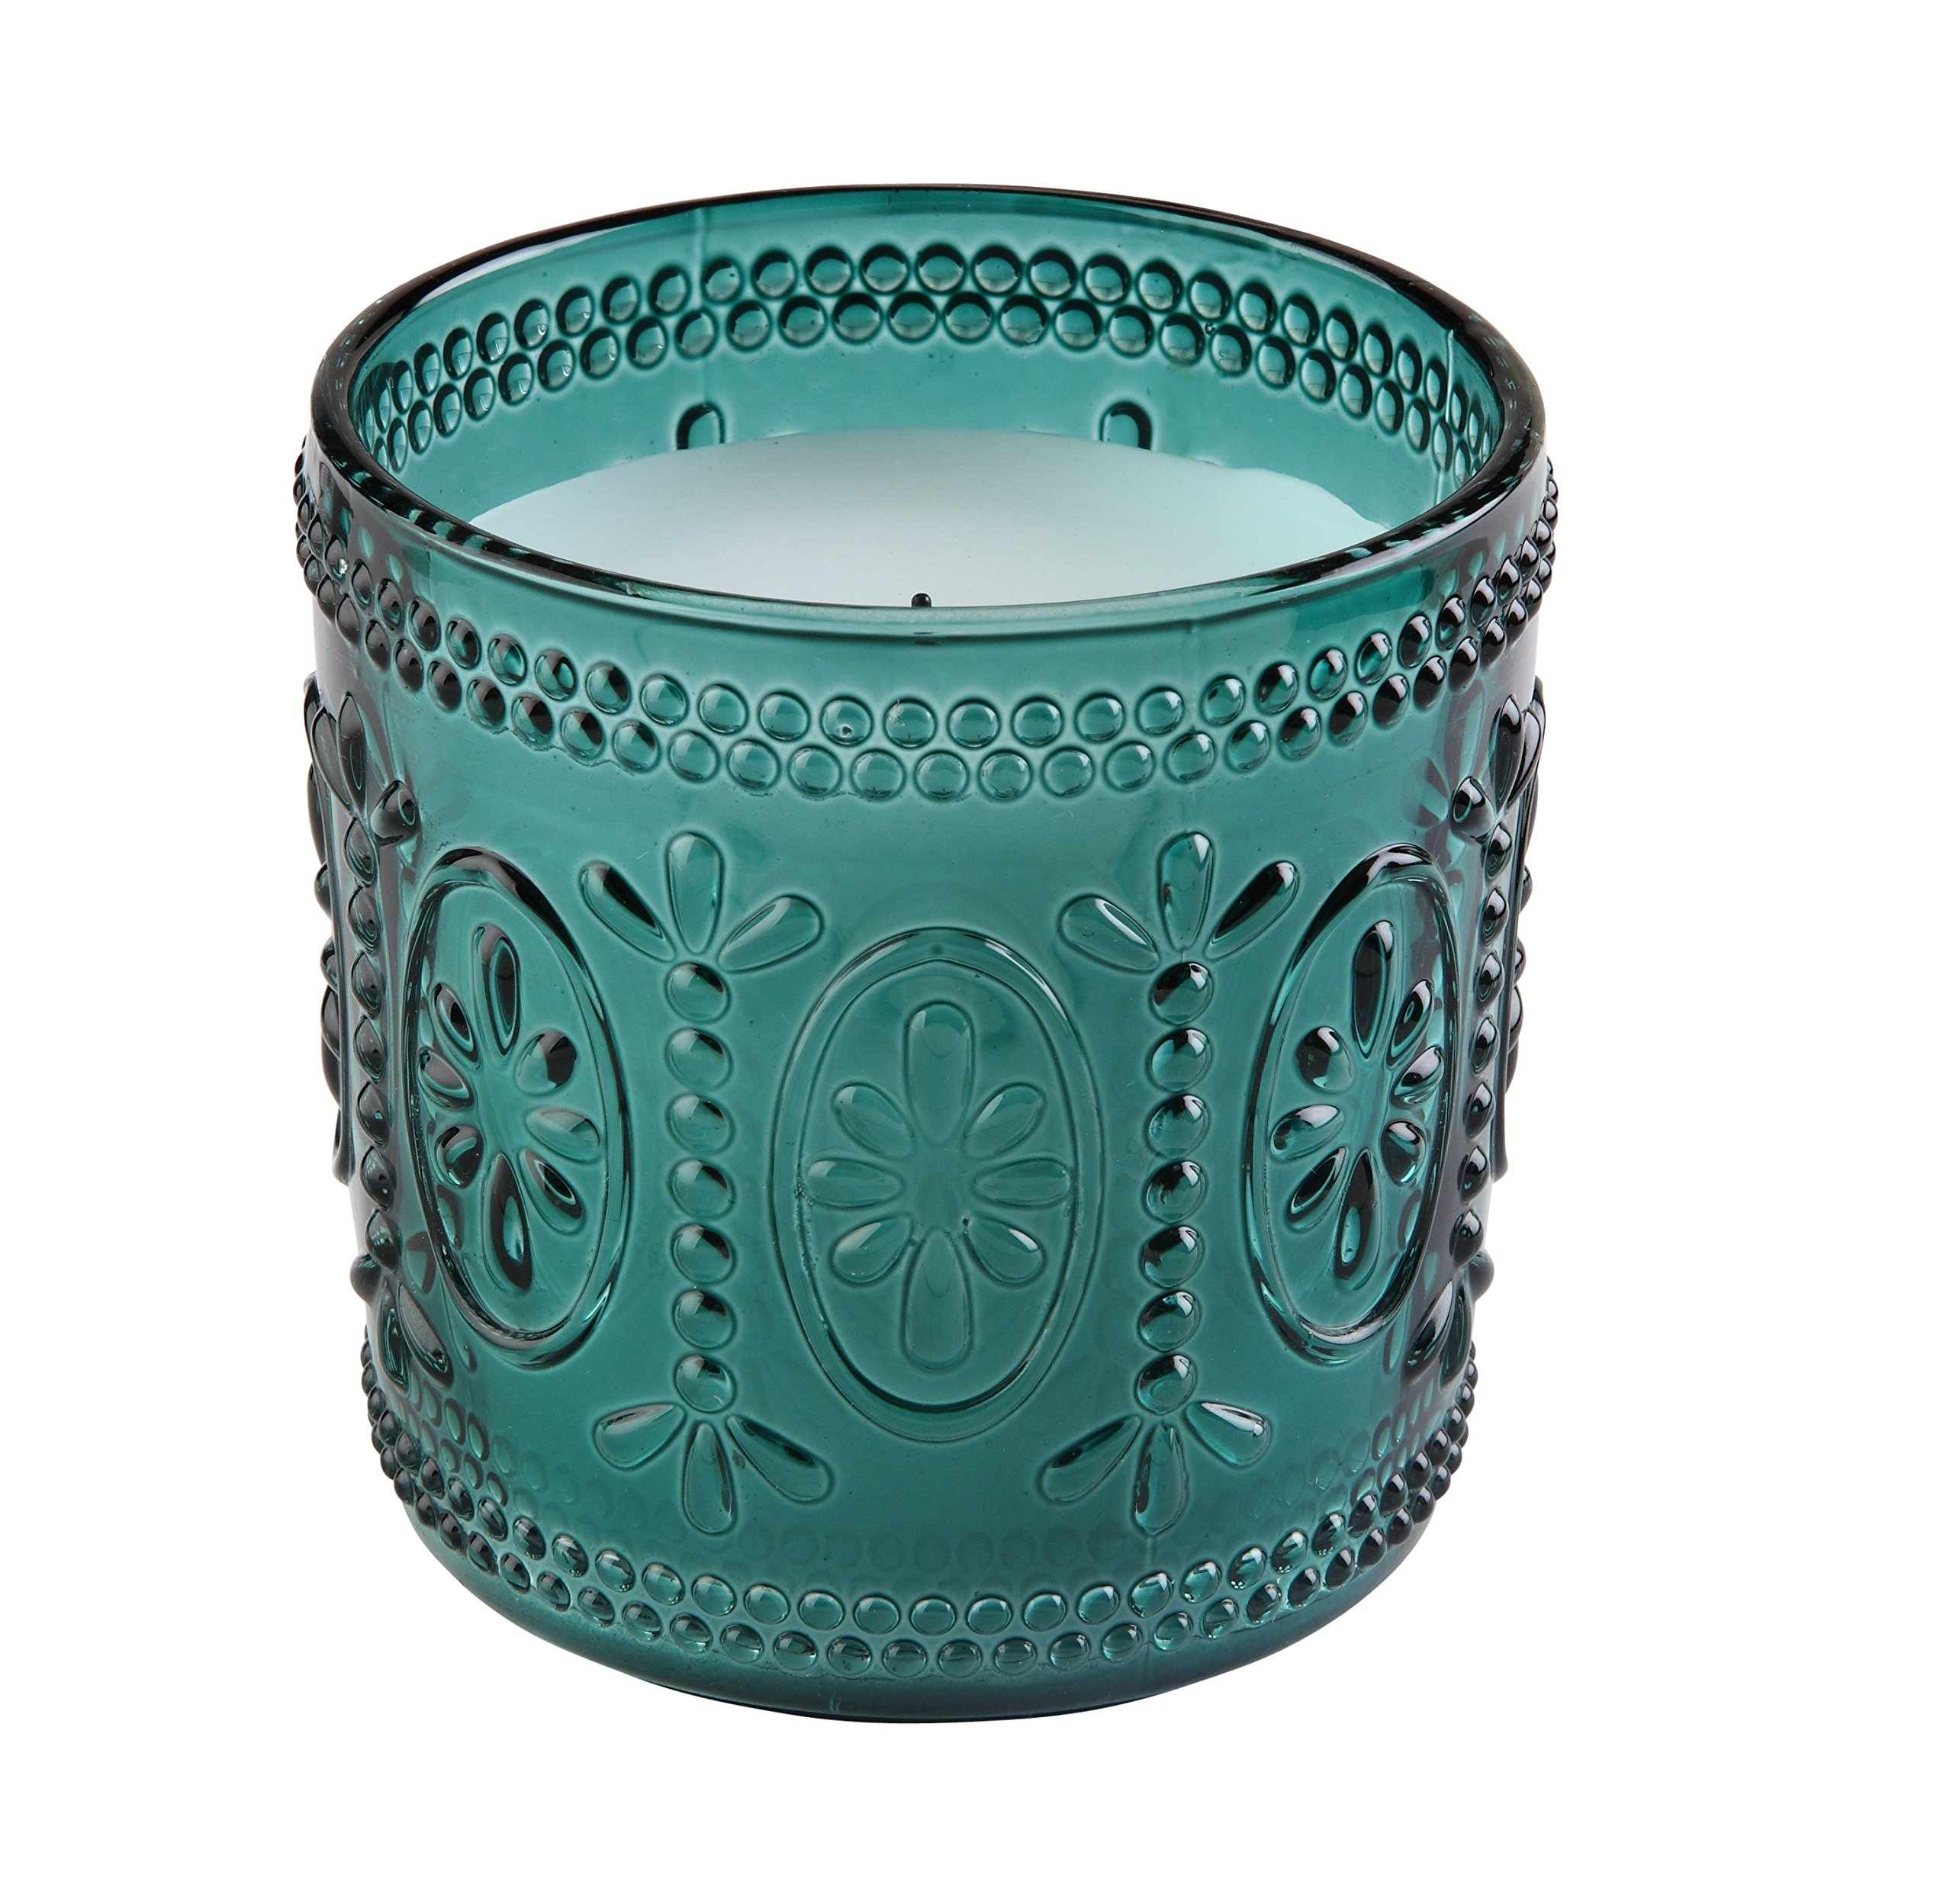 Sterno Products 60190 Amelia 3 1/2'' Teal Flameless Wax Filled Glass Lamp - 4-Pack by Sterno